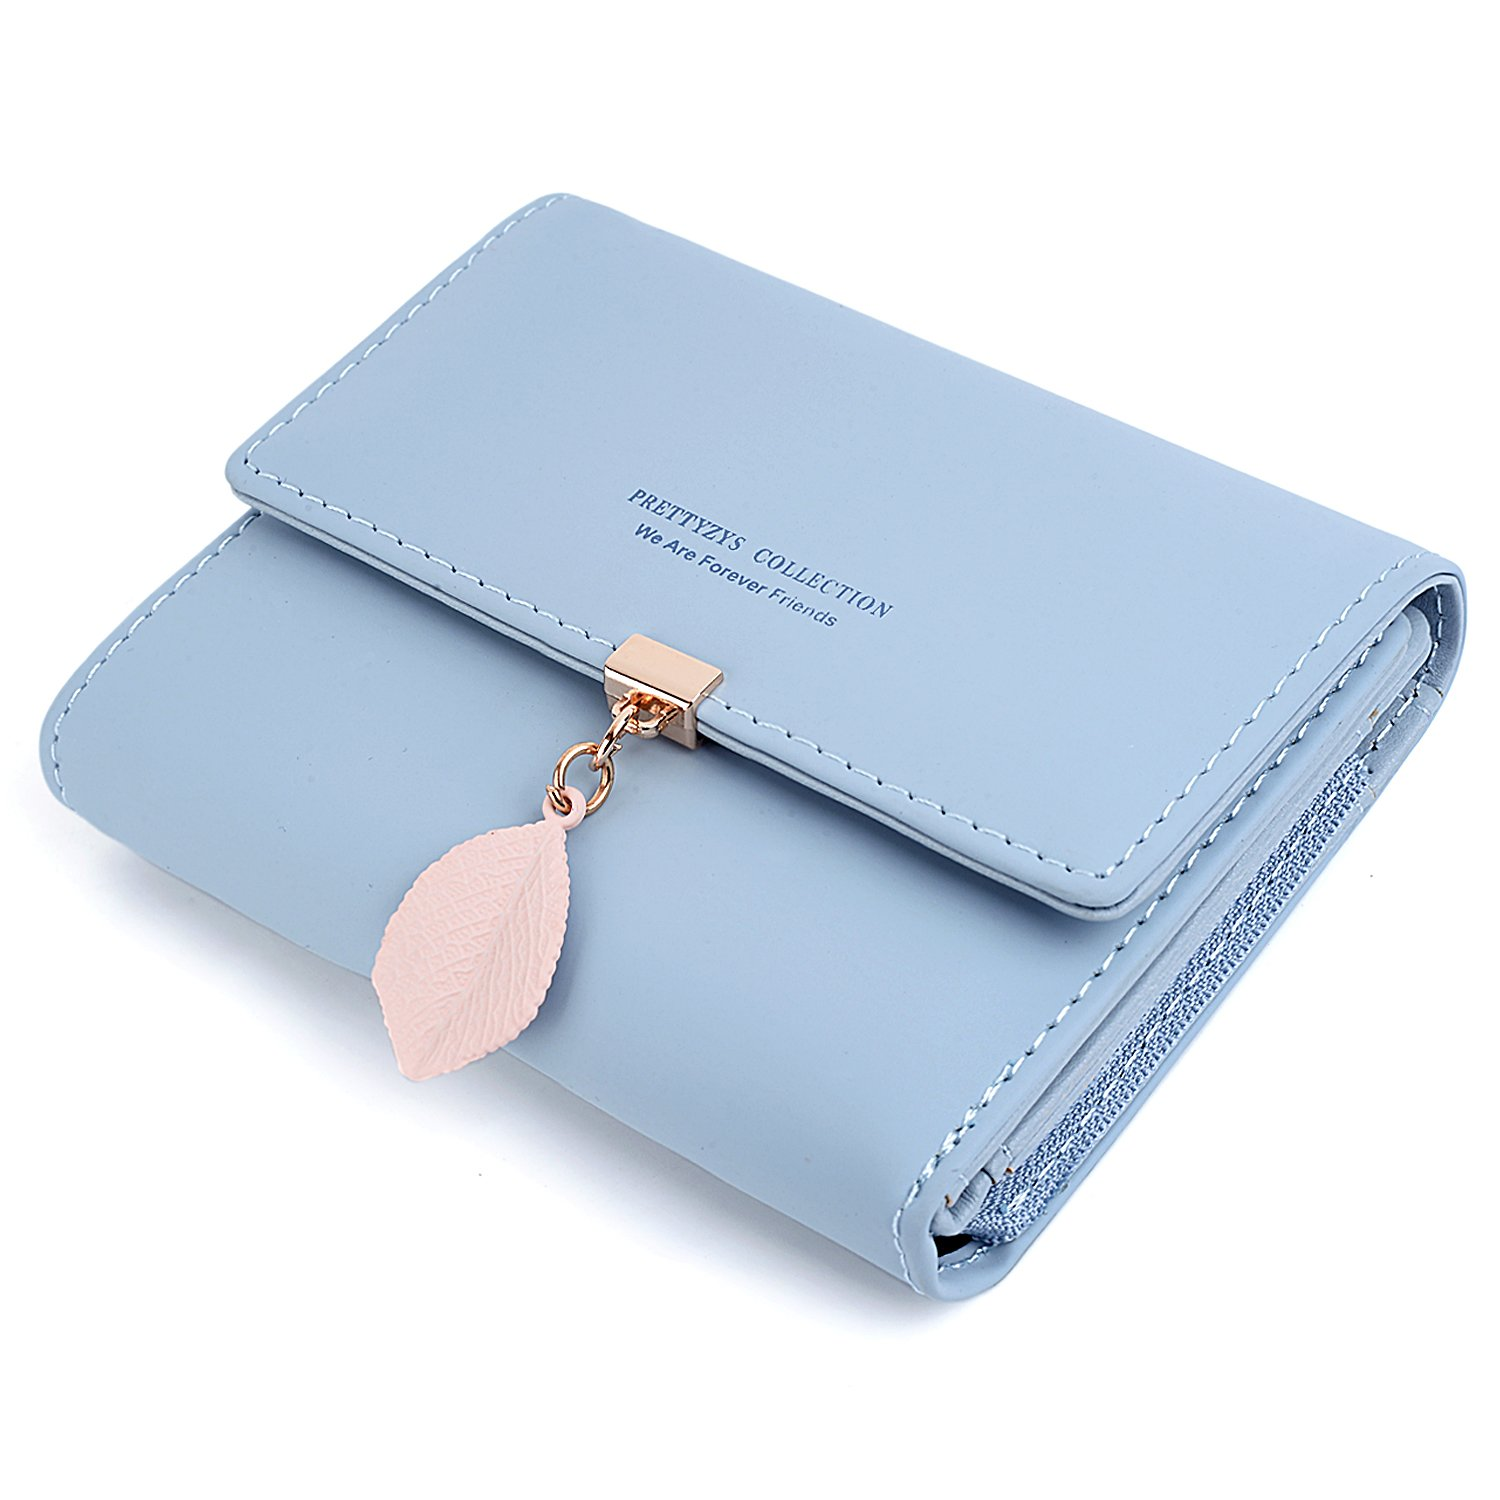 UTO PU Leather Small Wallet for Women Leaf Pendant 5 Card Slots 1 ID Window Card Holder Organizer Girls Zipper Coin Purse Black 18000452-1EU